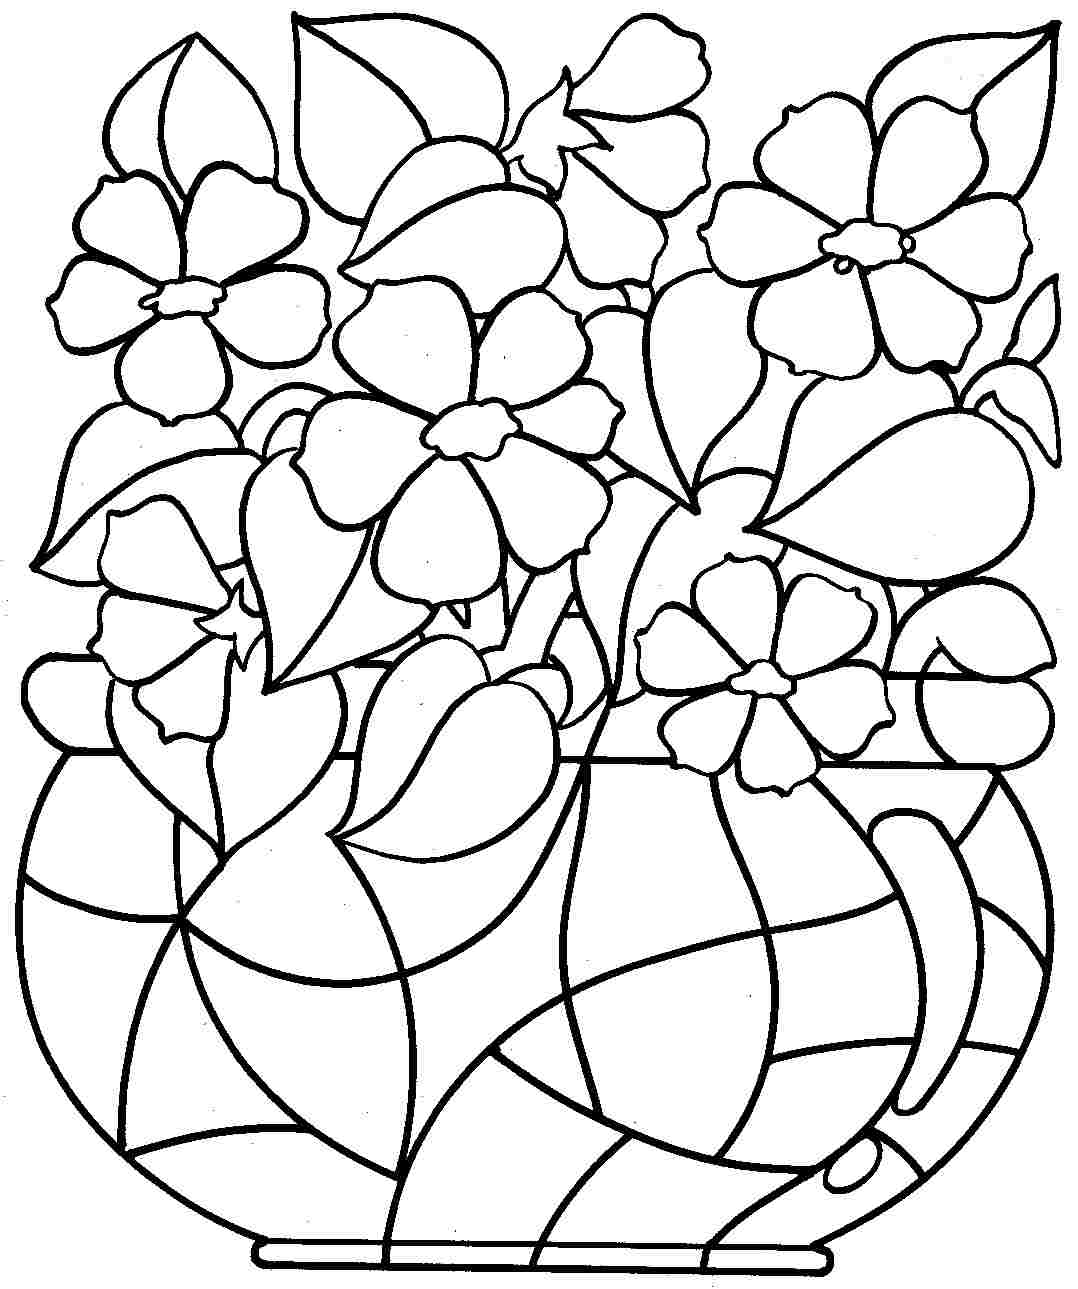 easy flower coloring pages click americana39s shop see cool fashions vintage easy flower coloring pages